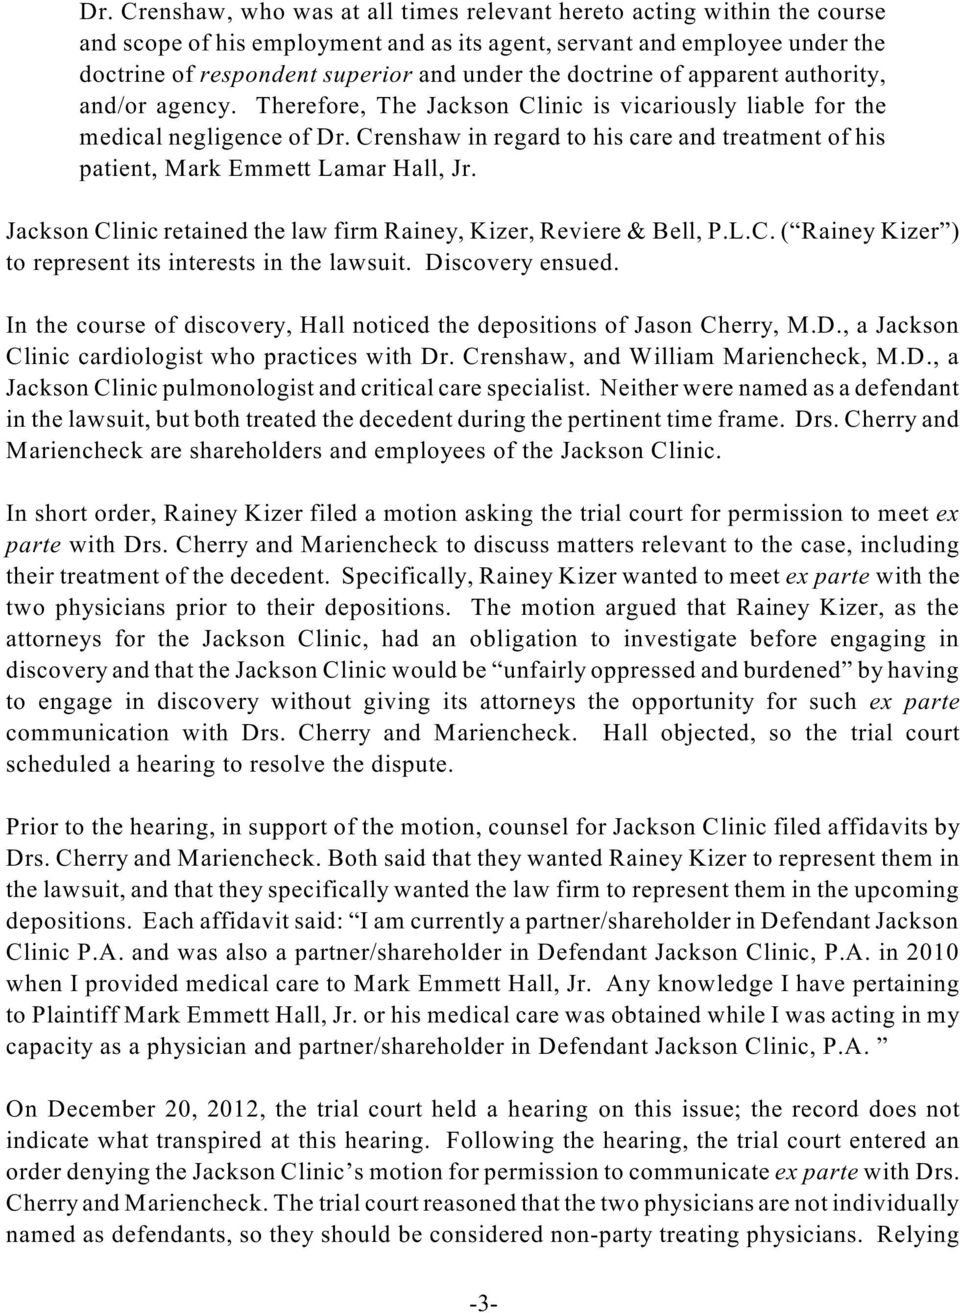 Crenshaw in regard to his care and treatment of his patient, Mark Emmett Lamar Hall, Jr. Jackson Clinic retained the law firm Rainey, Kizer, Reviere & Bell, P.L.C. ( Rainey Kizer ) to represent its interests in the lawsuit.